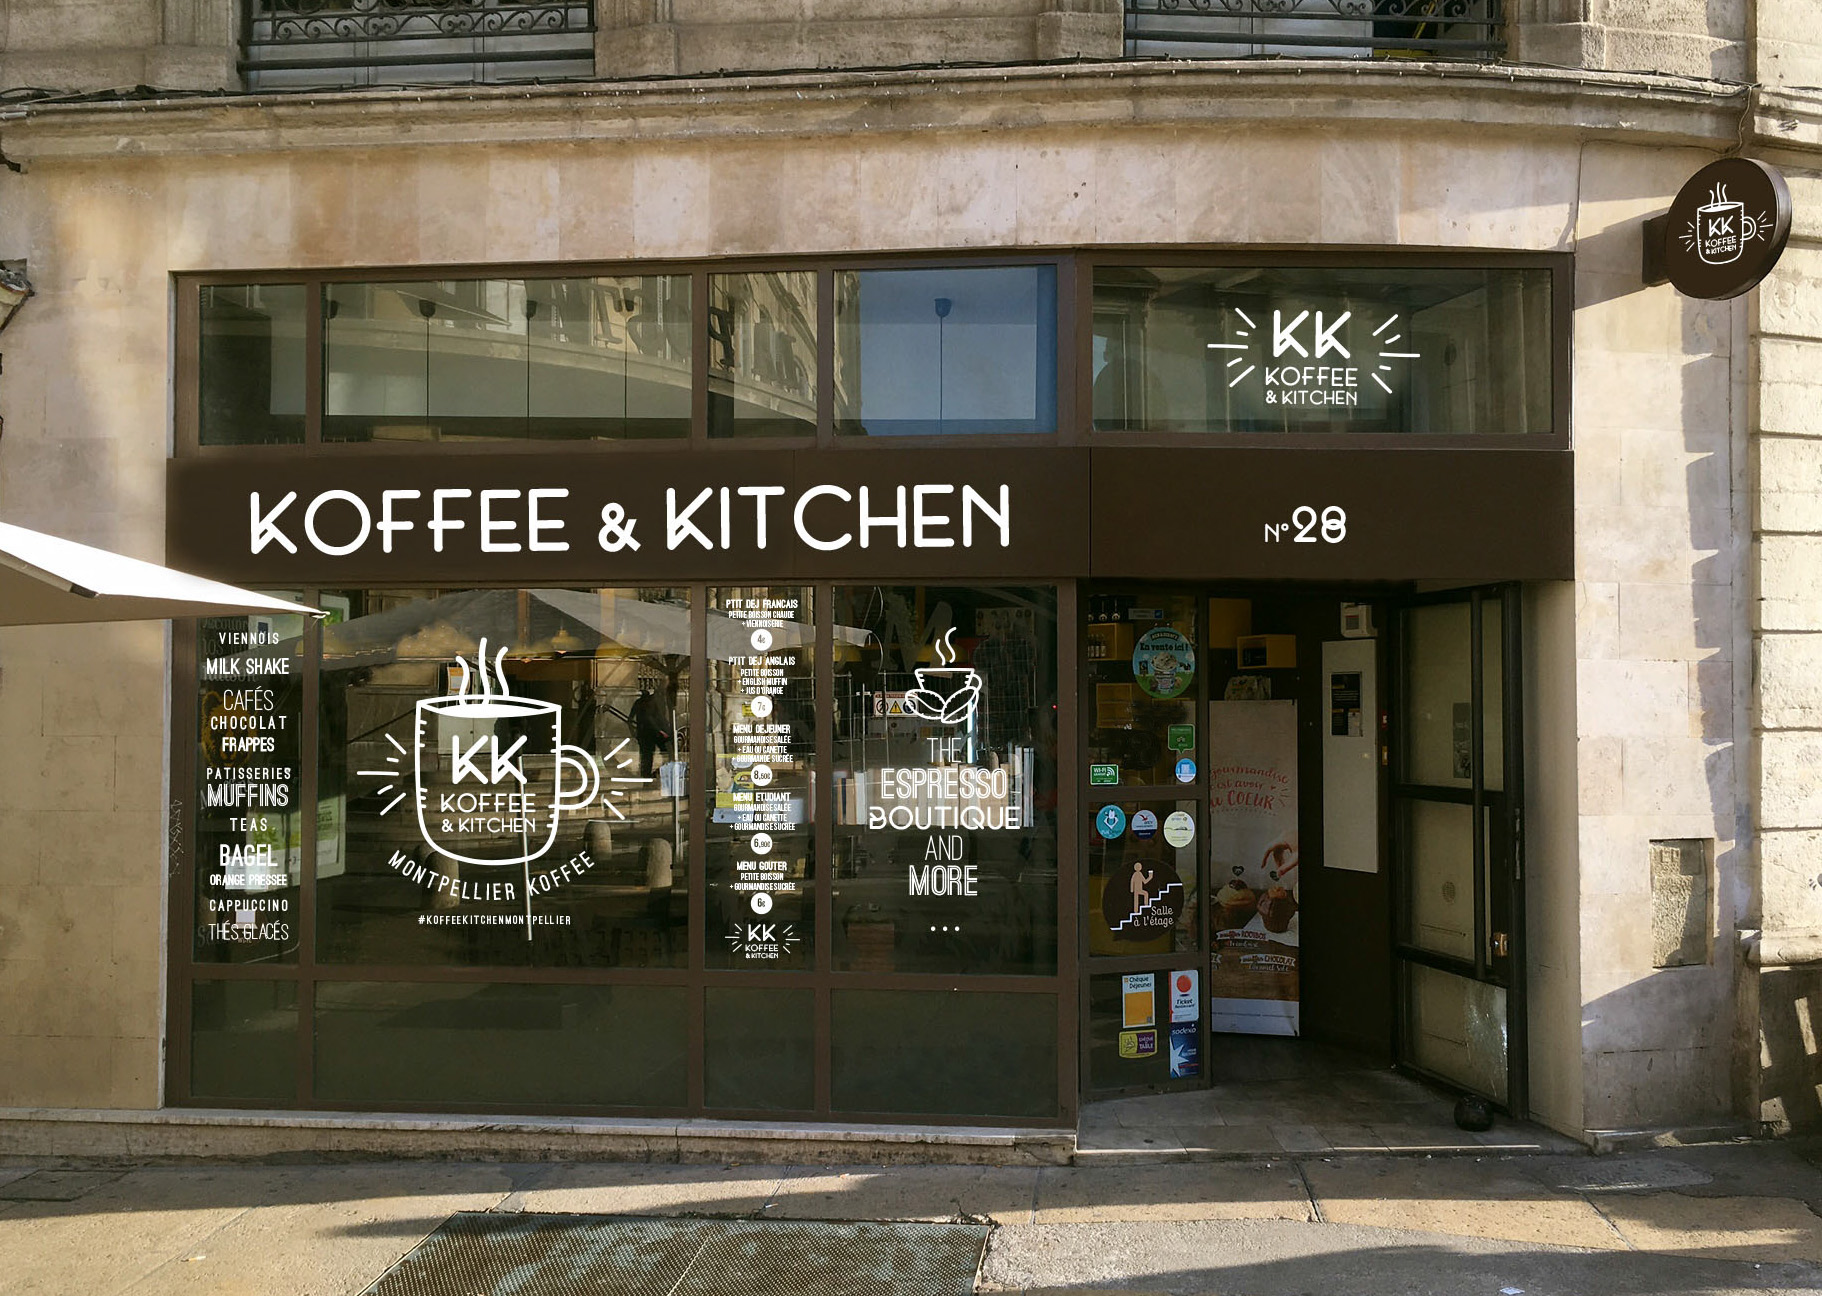 K&K- Koffe and Kitchen